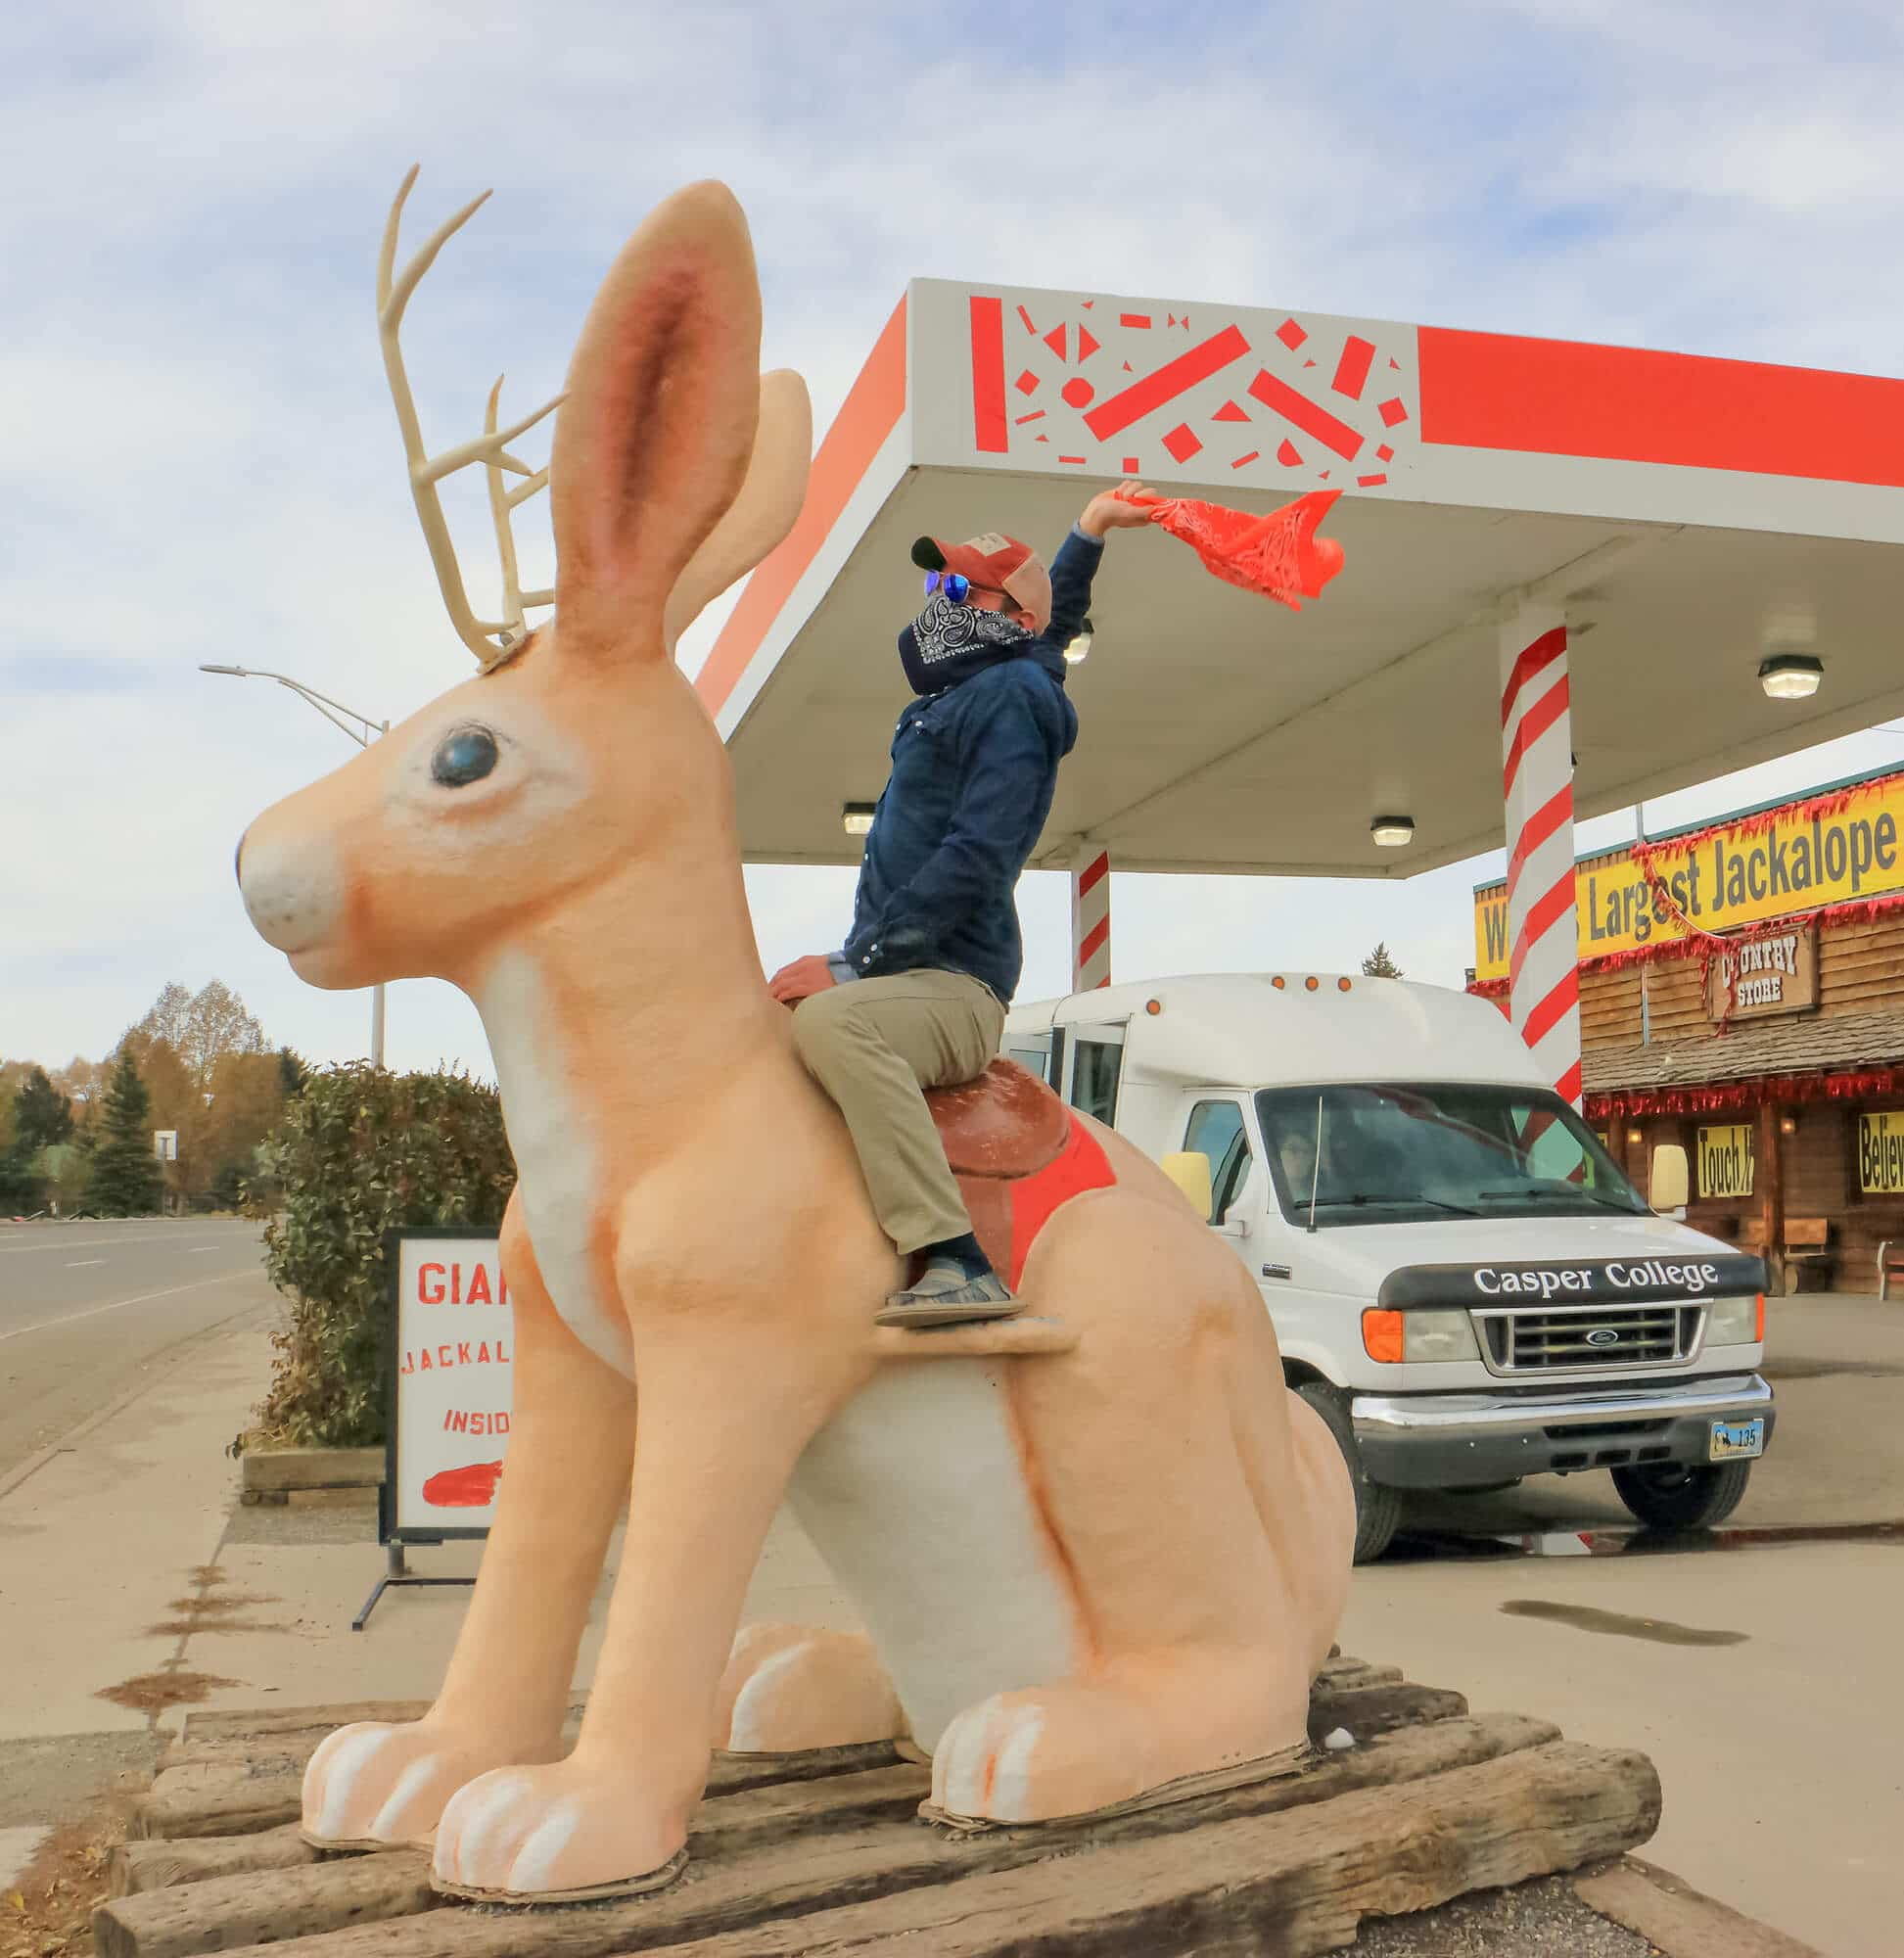 Student having fun posing on a statue of a jackalope